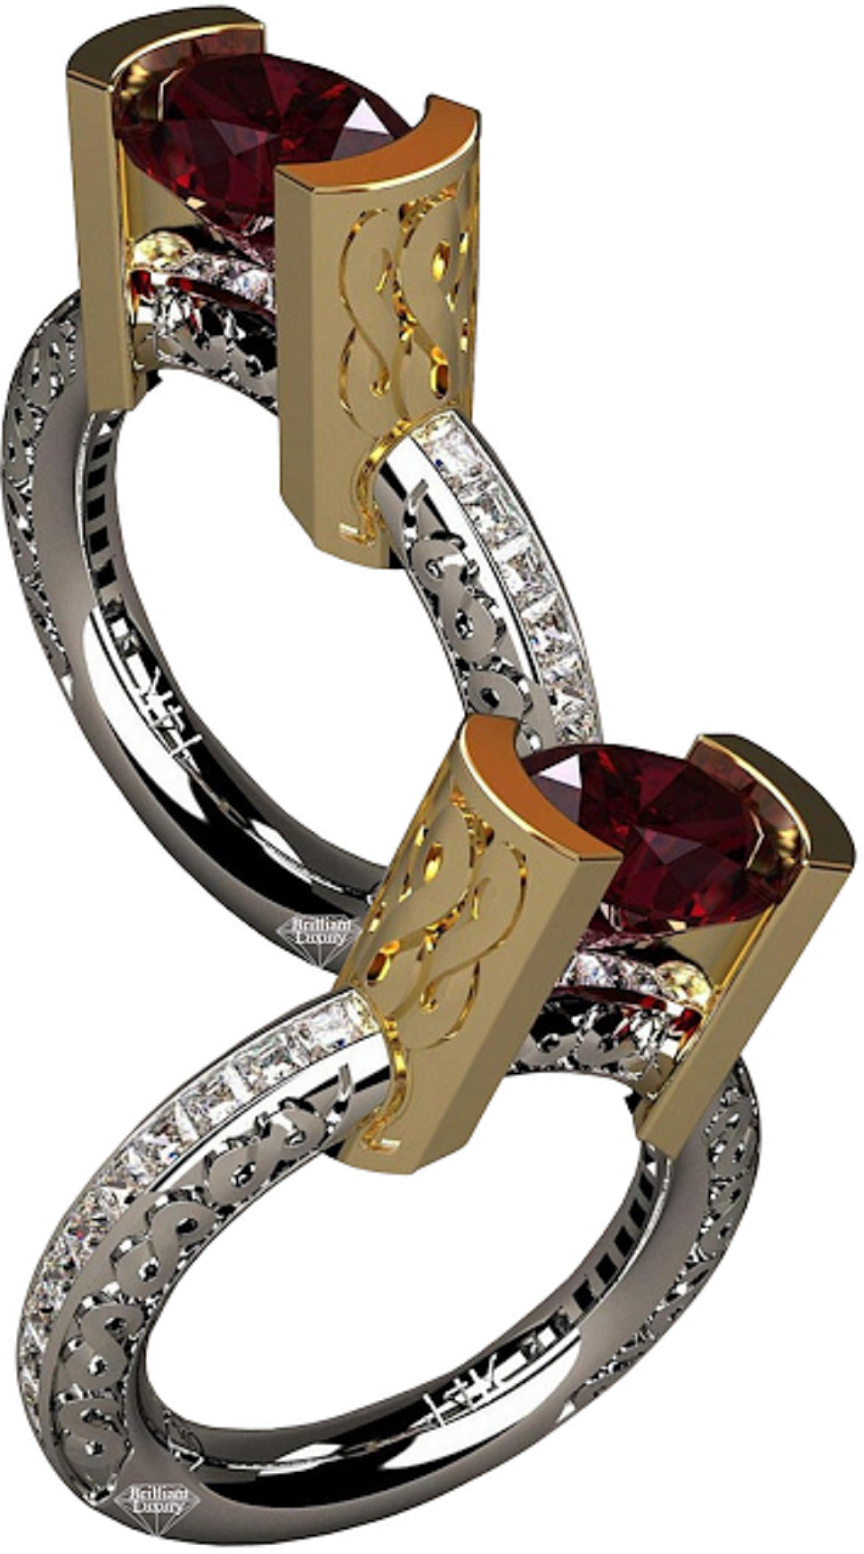 Best massive bling rings 2021 Infinity Ruby with Clear Glittering Diamond Ring